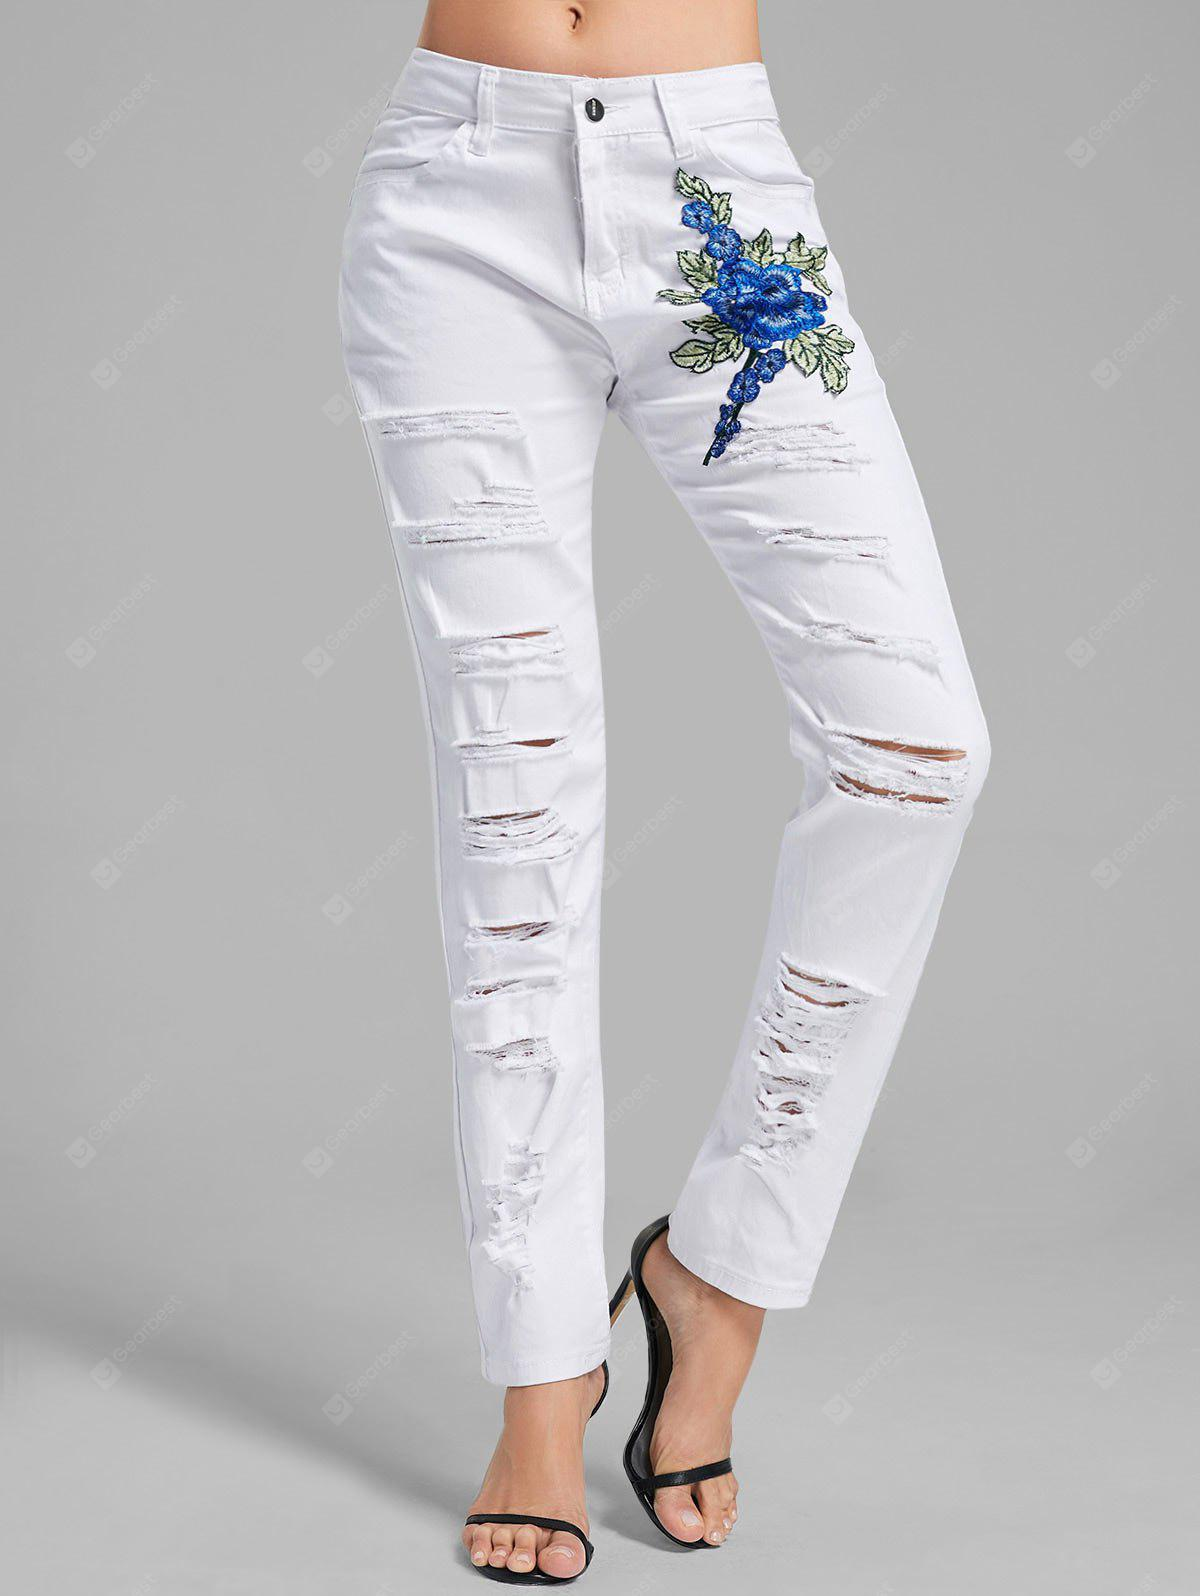 WHITE 2XL Floral Embroidered Ripped Denim Pants